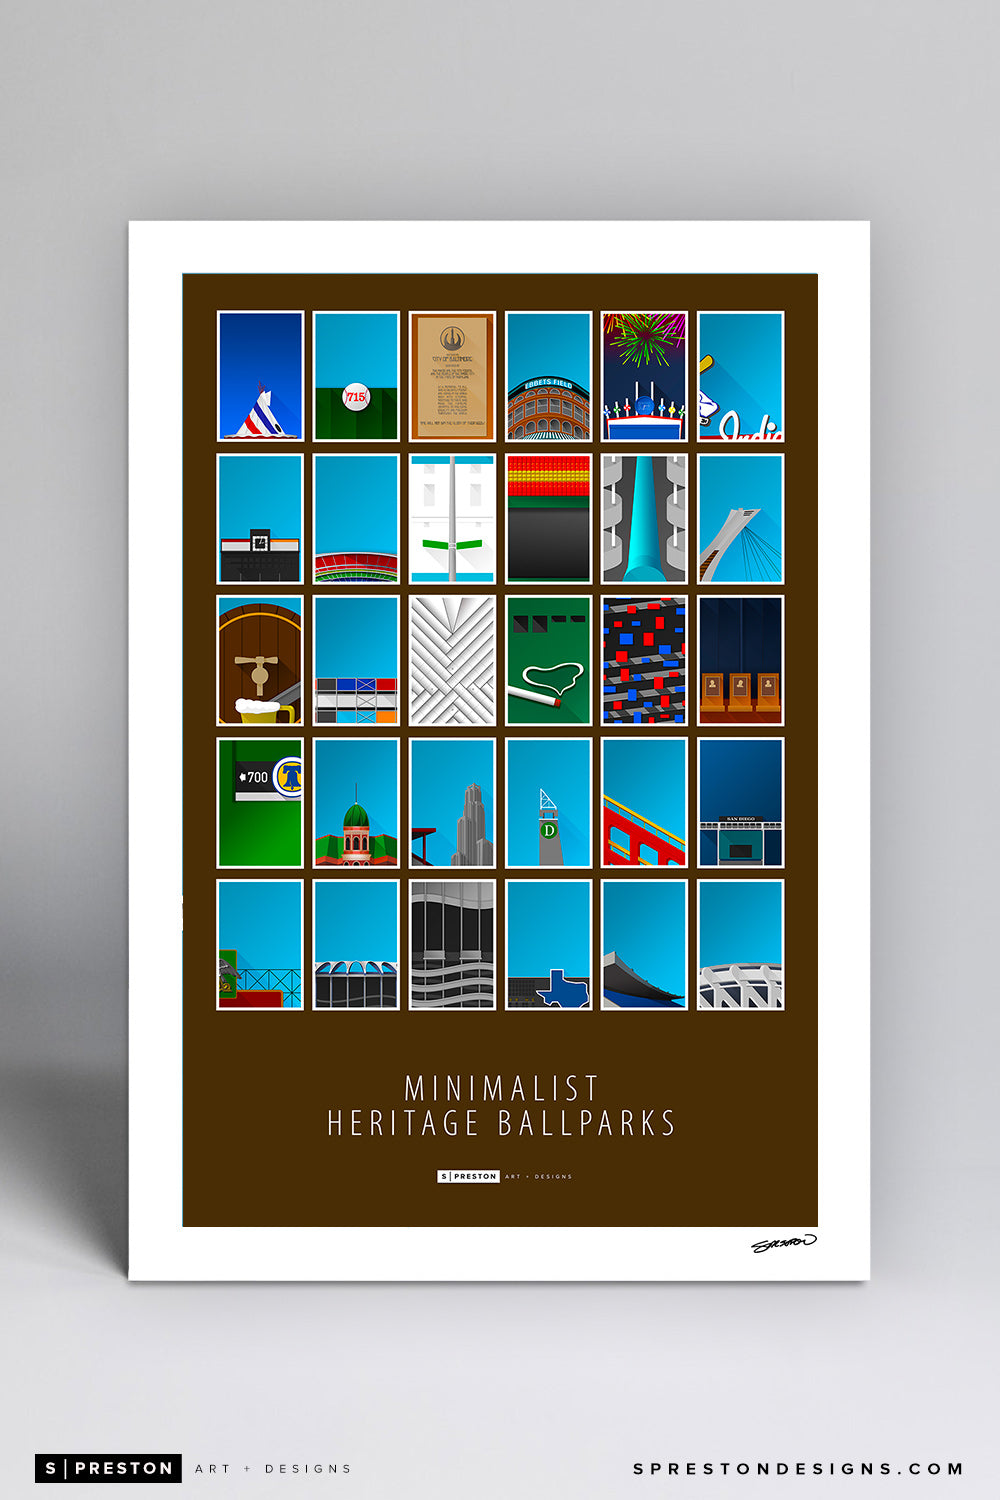 All Minimalist Heritage MLB Ballparks Art Print - Major League Baseball - S. Preston Art + Designs